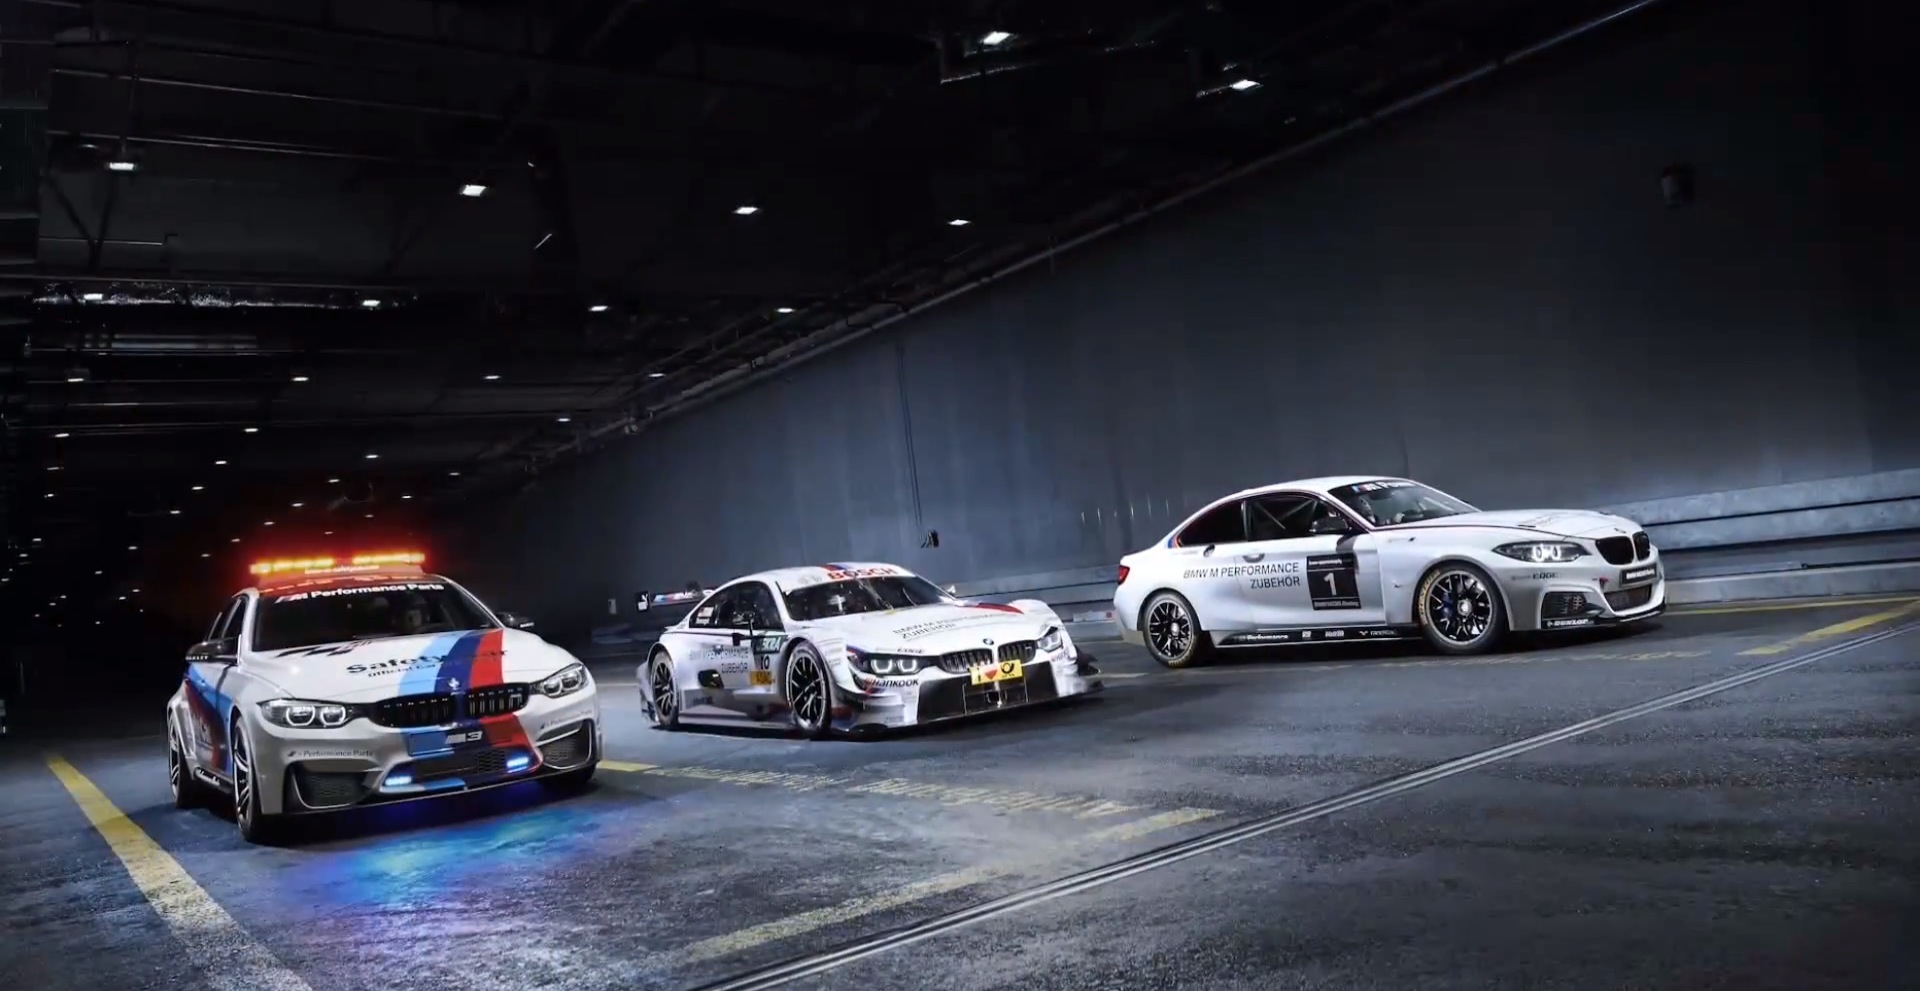 BMW M4 Safety Car, DTM Car and M235i Racing Come Together for 14 Epic Seconds - autoevolution